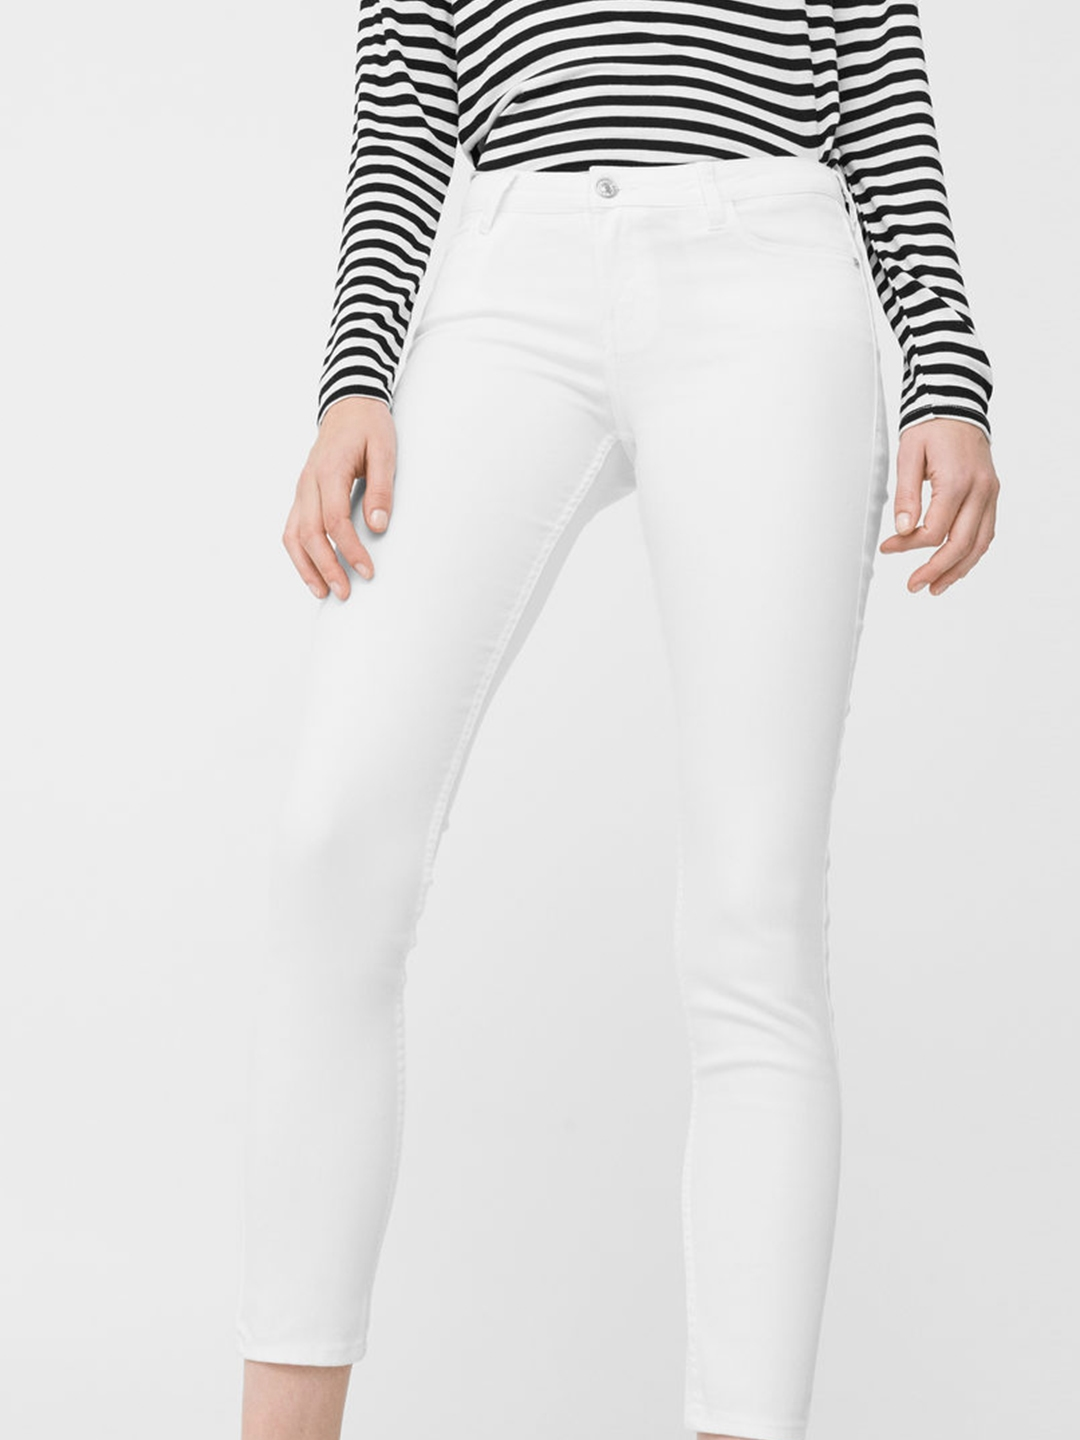 White Jeans For Women - Buy White Jeans For Women online in India